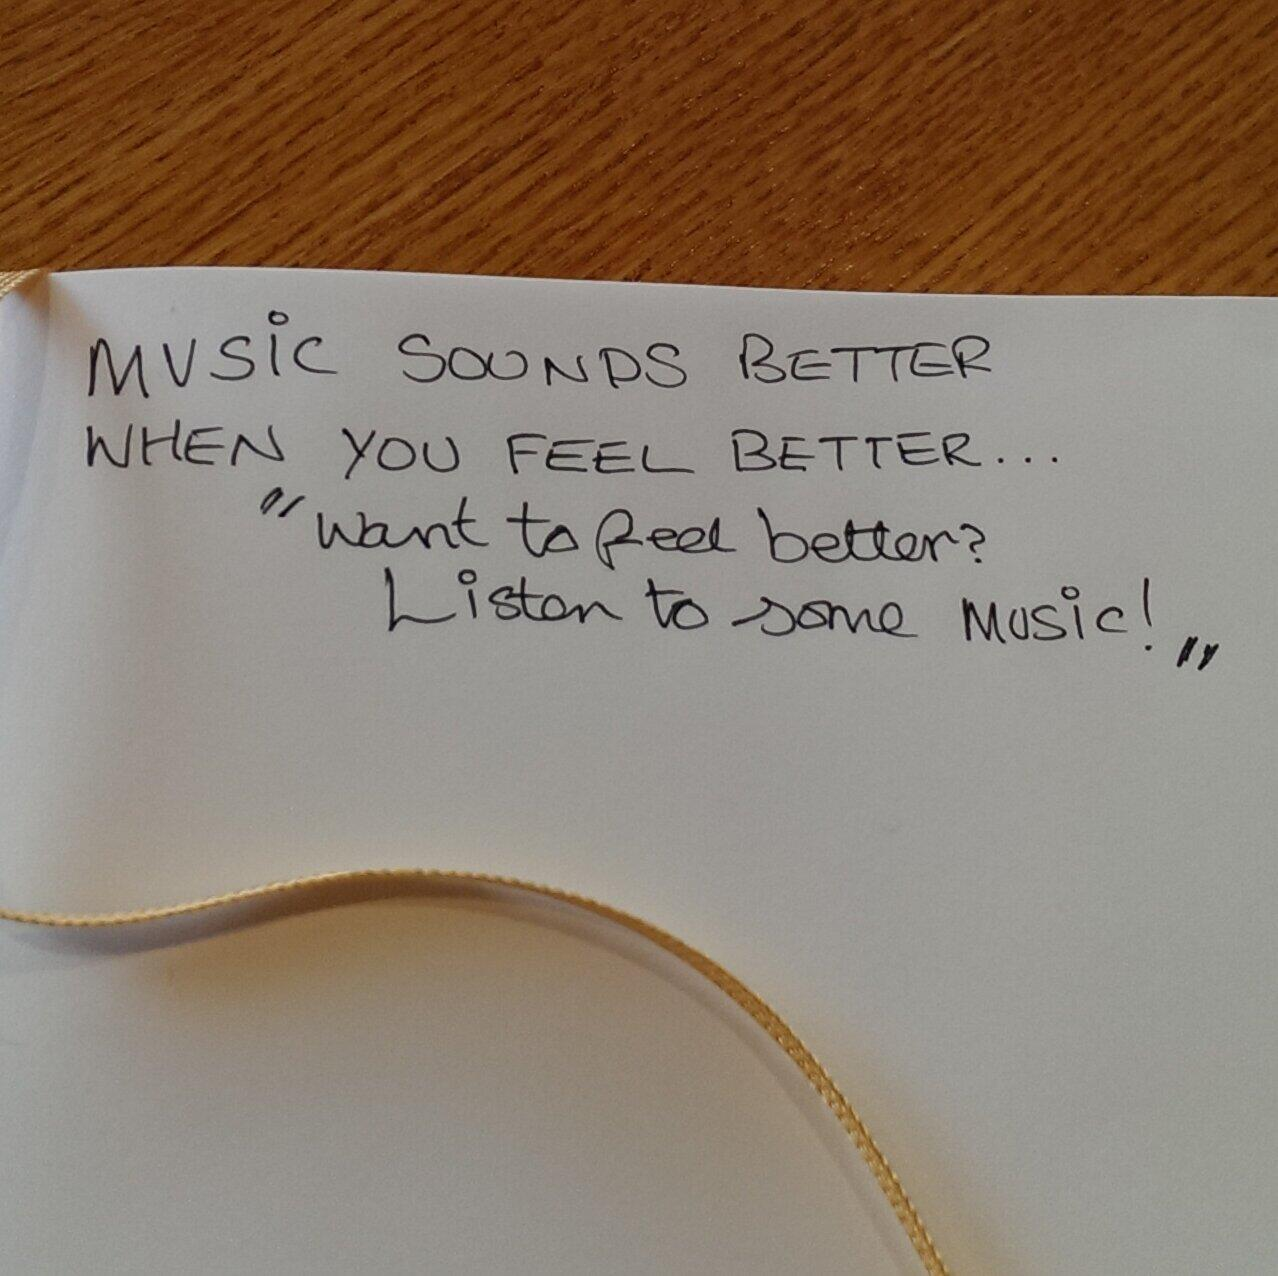 Twitter / JimConnolly: The magic of music... ...